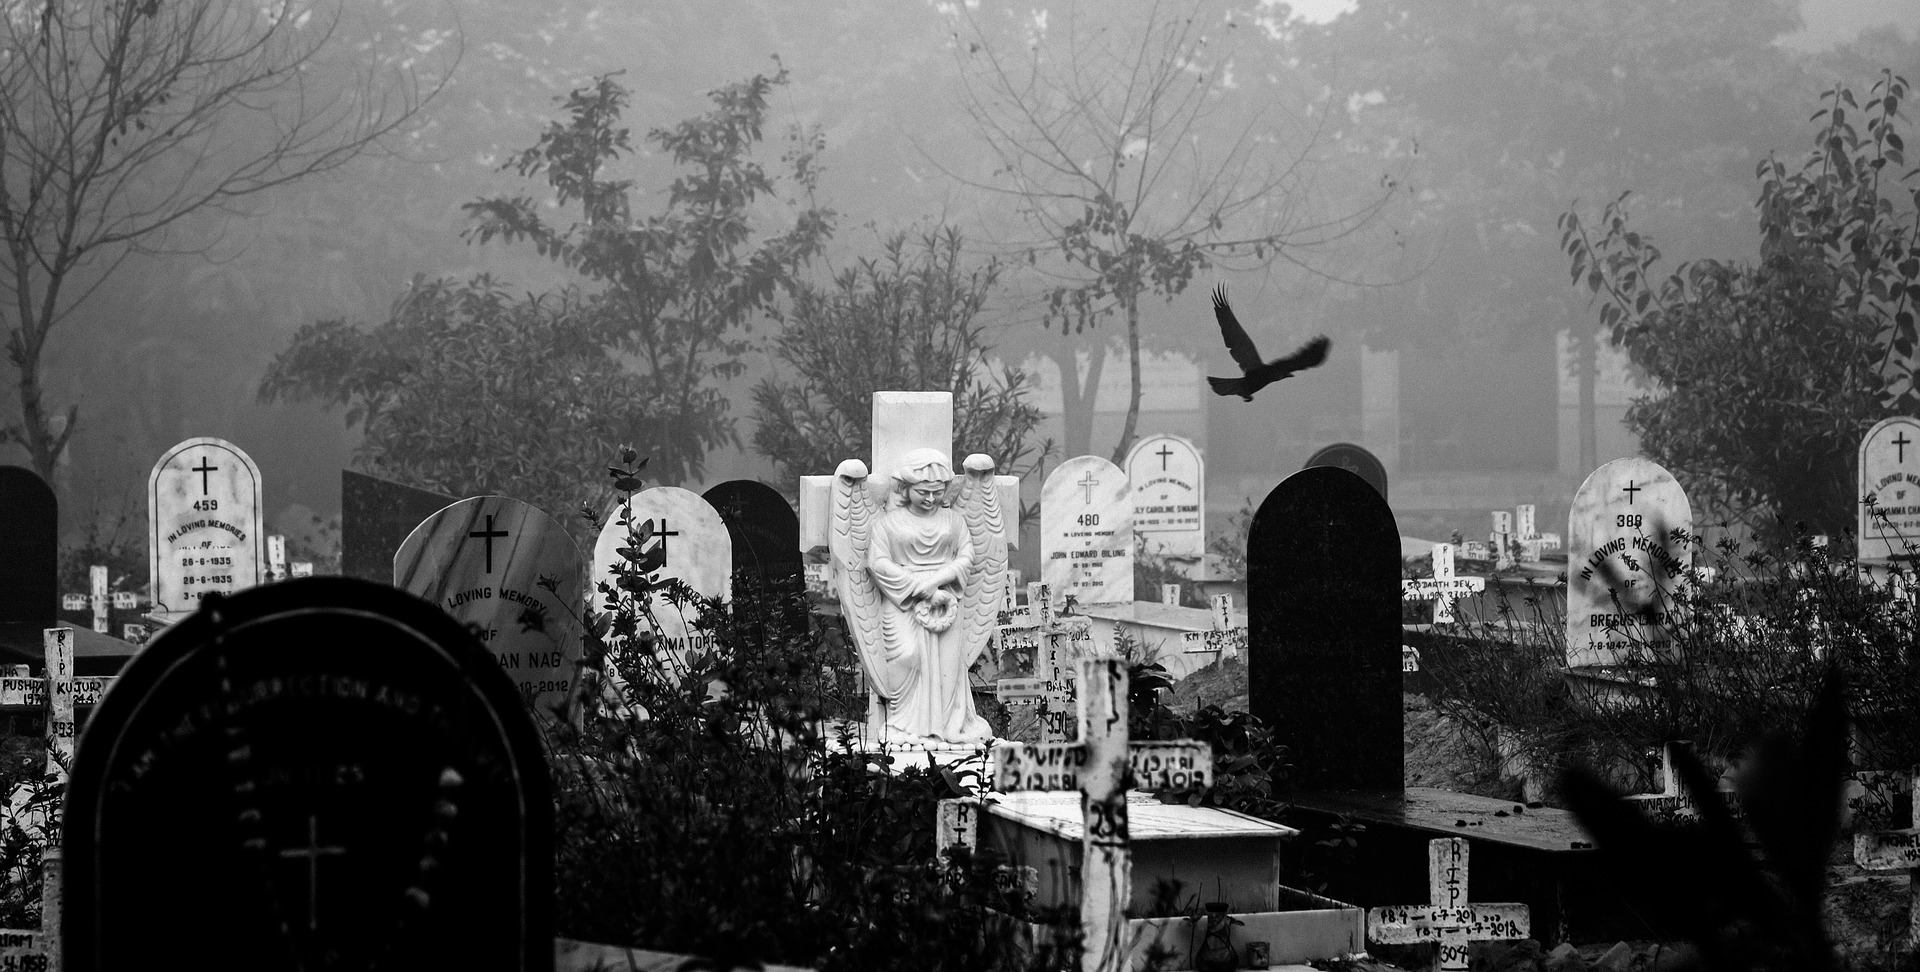 Solemn black and white depiction of a grave.